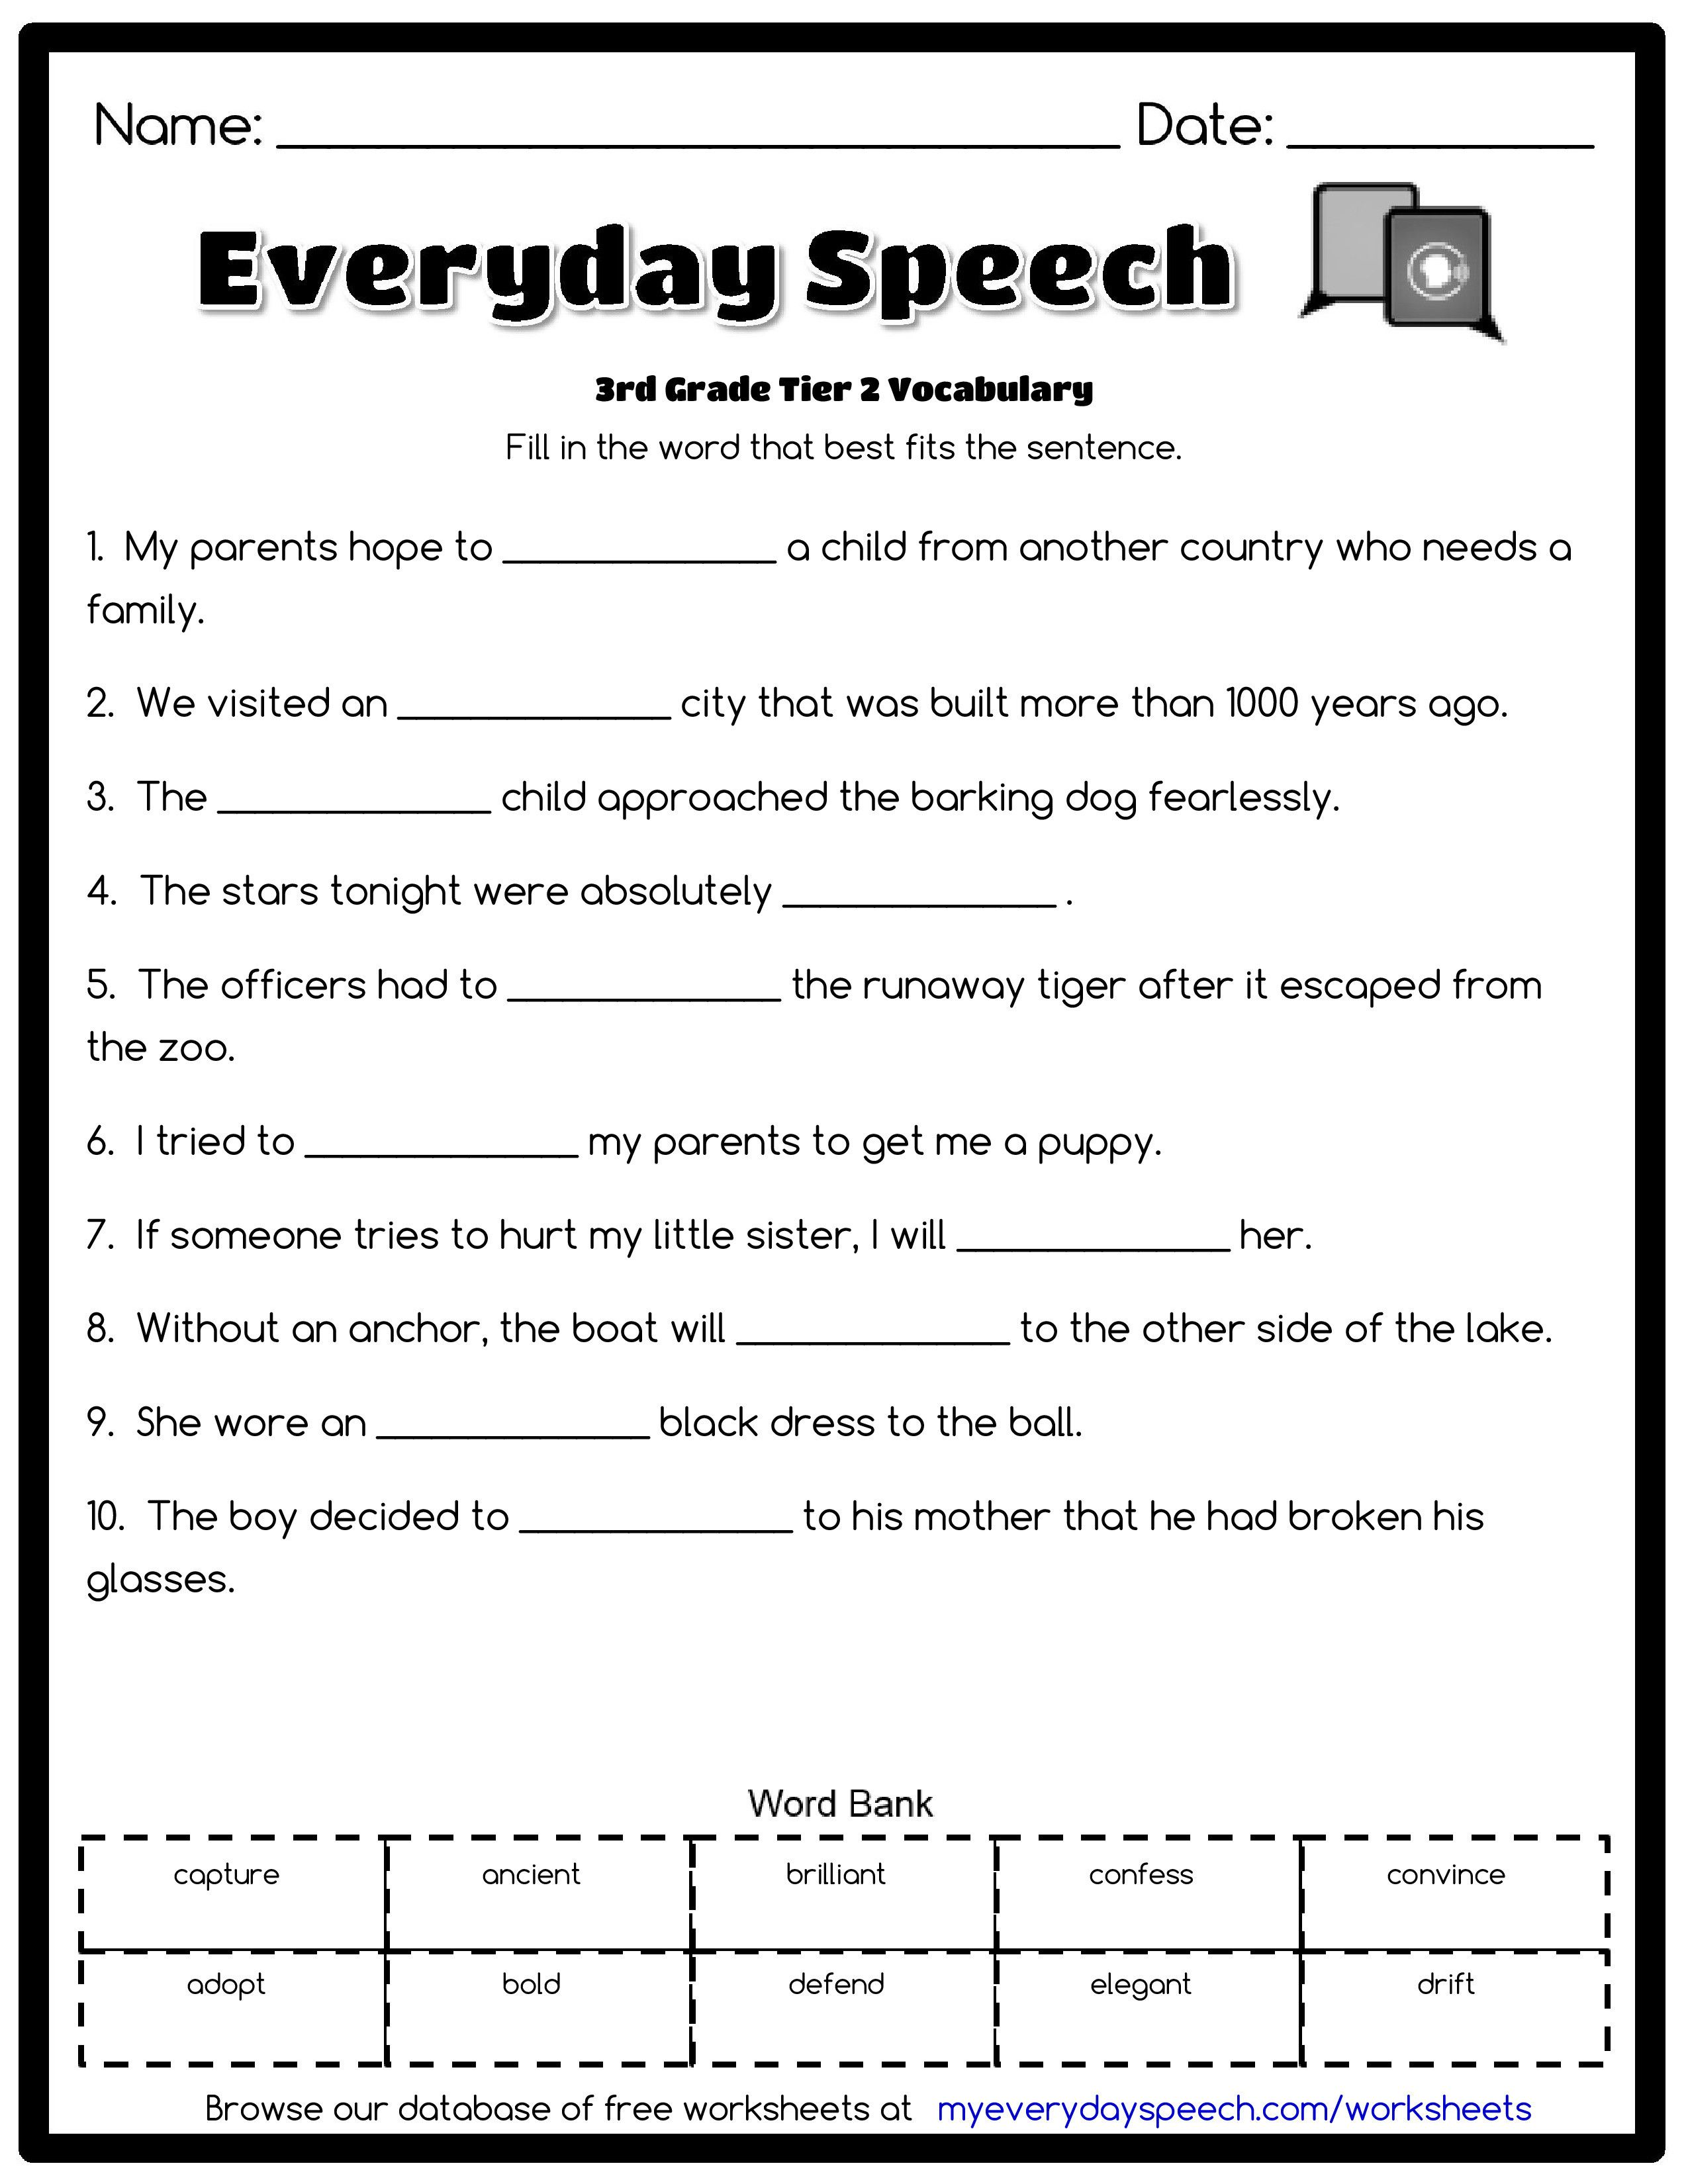 LinearPeriodic Figurative Language Worksheets Middle ...